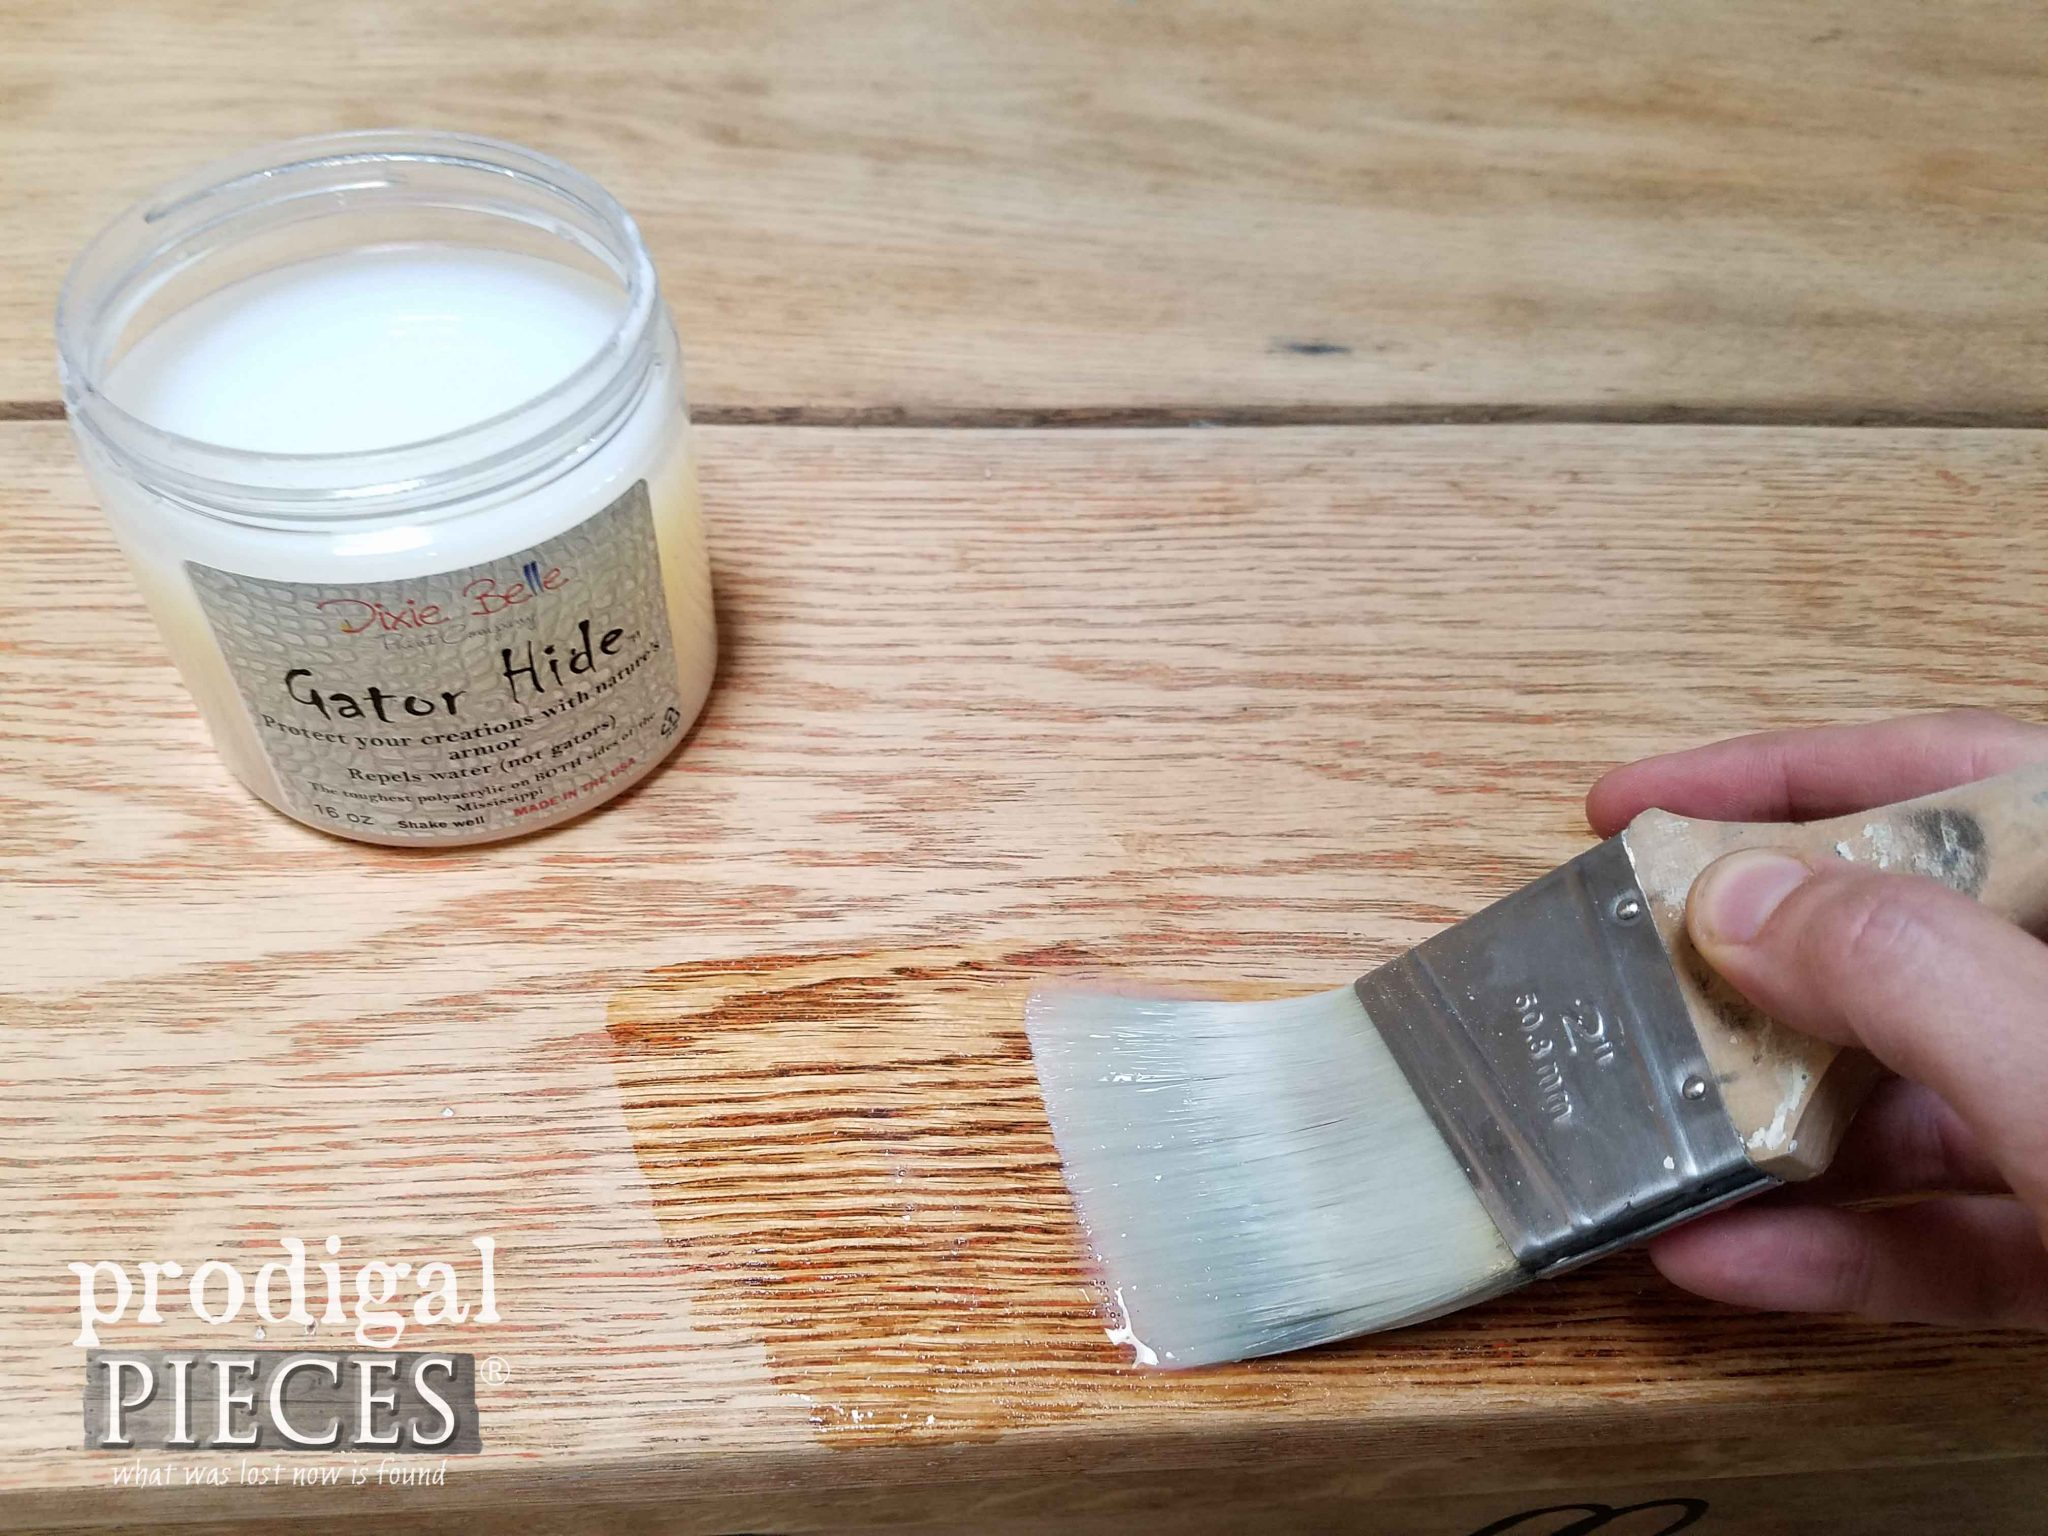 Gator Hide by Dixie Belle Paint Company for Topcoat by Prodigal Pieces | prodigalpieces.com